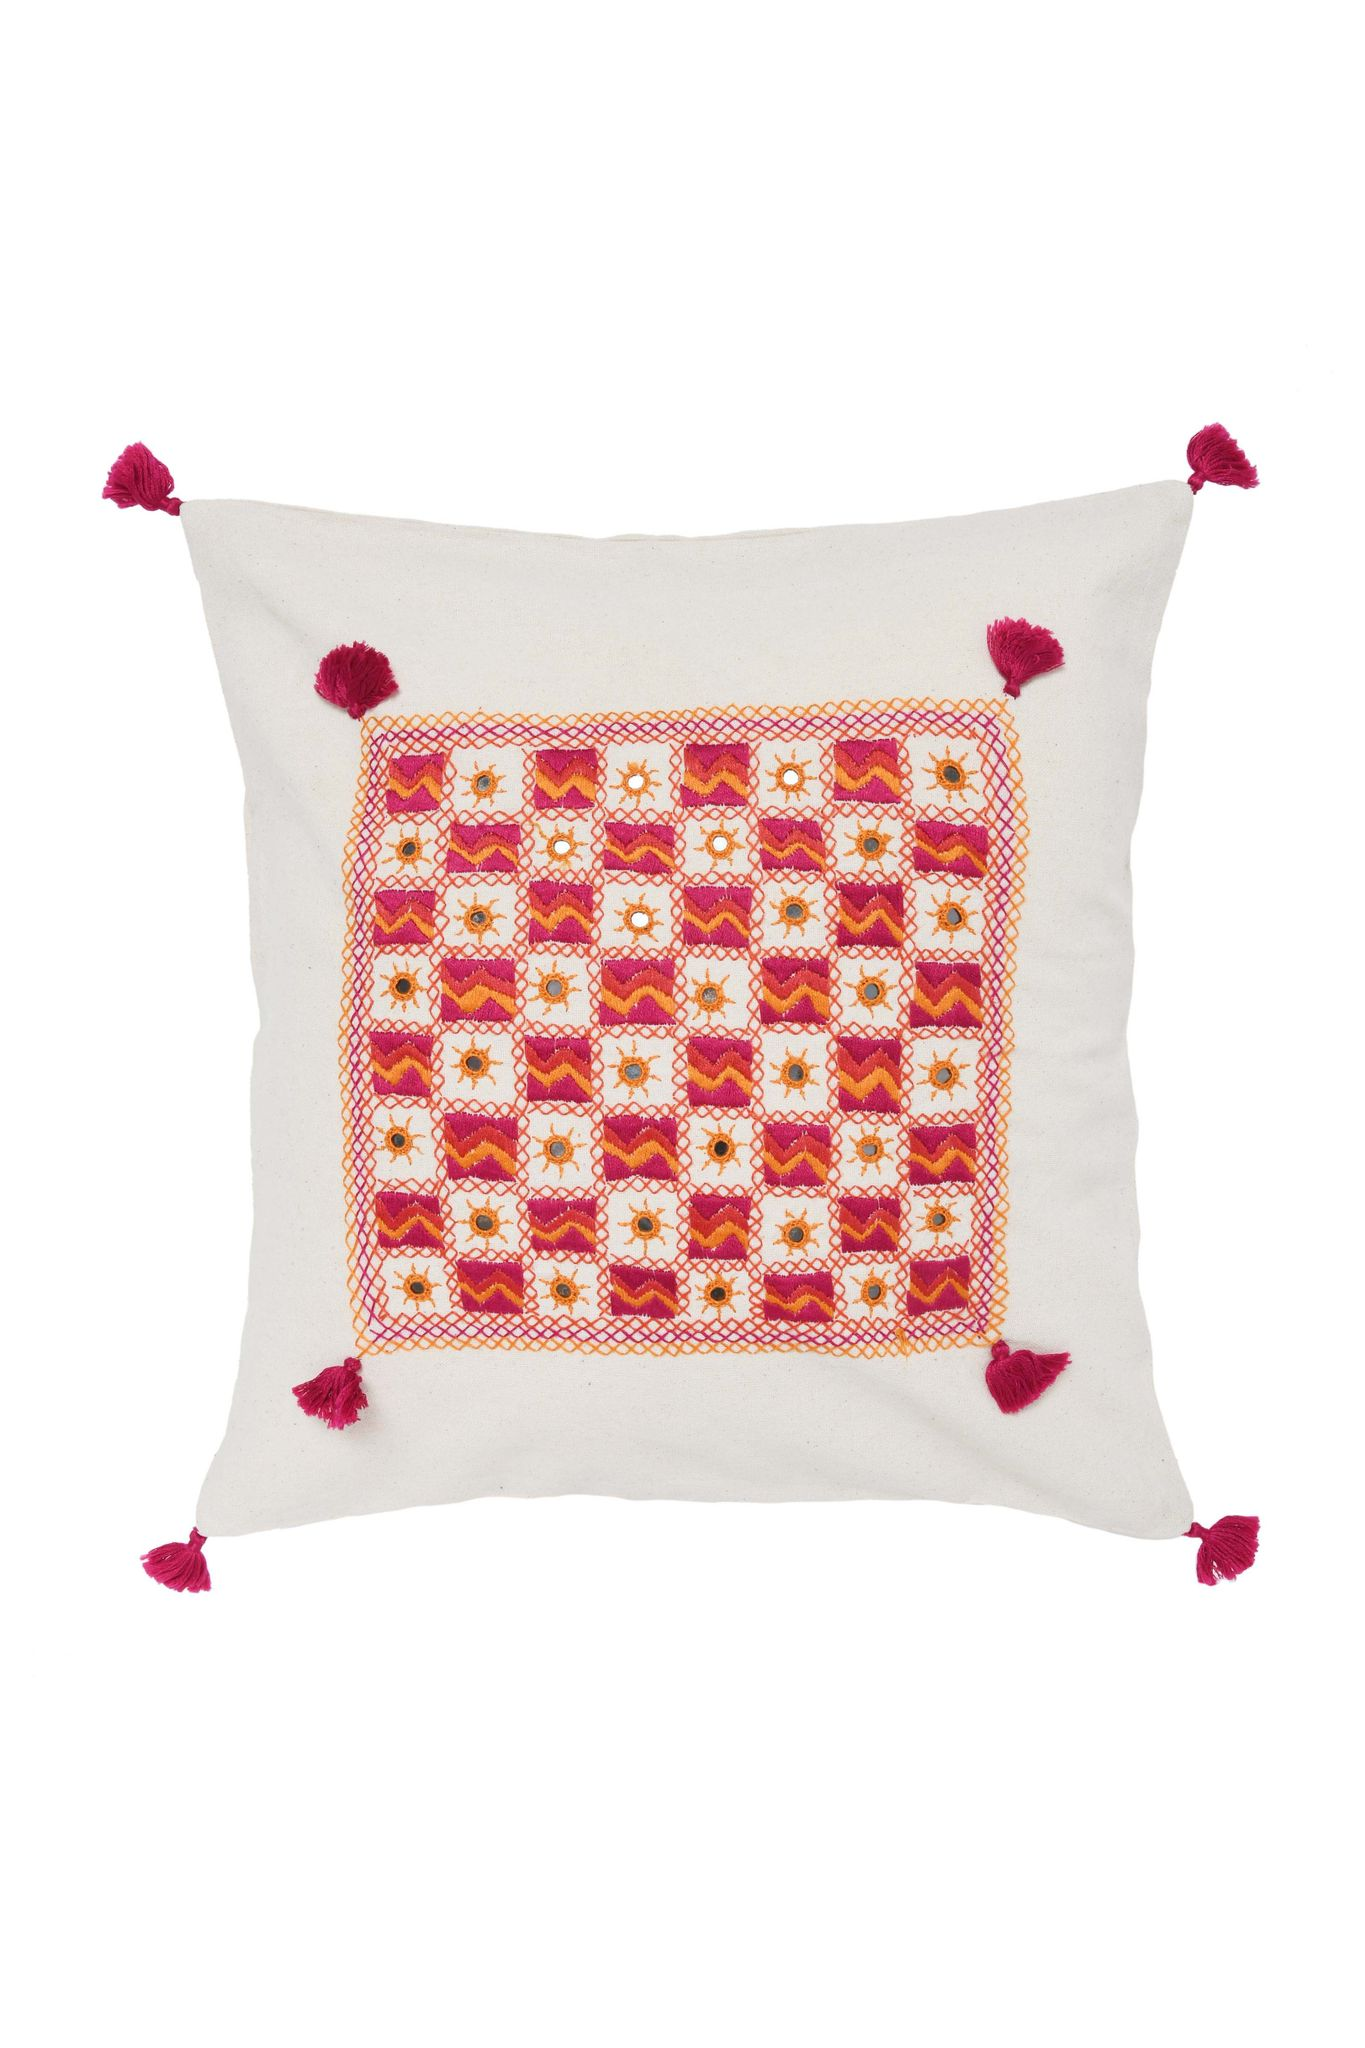 Hand Embroidery Natural Cushion Cover